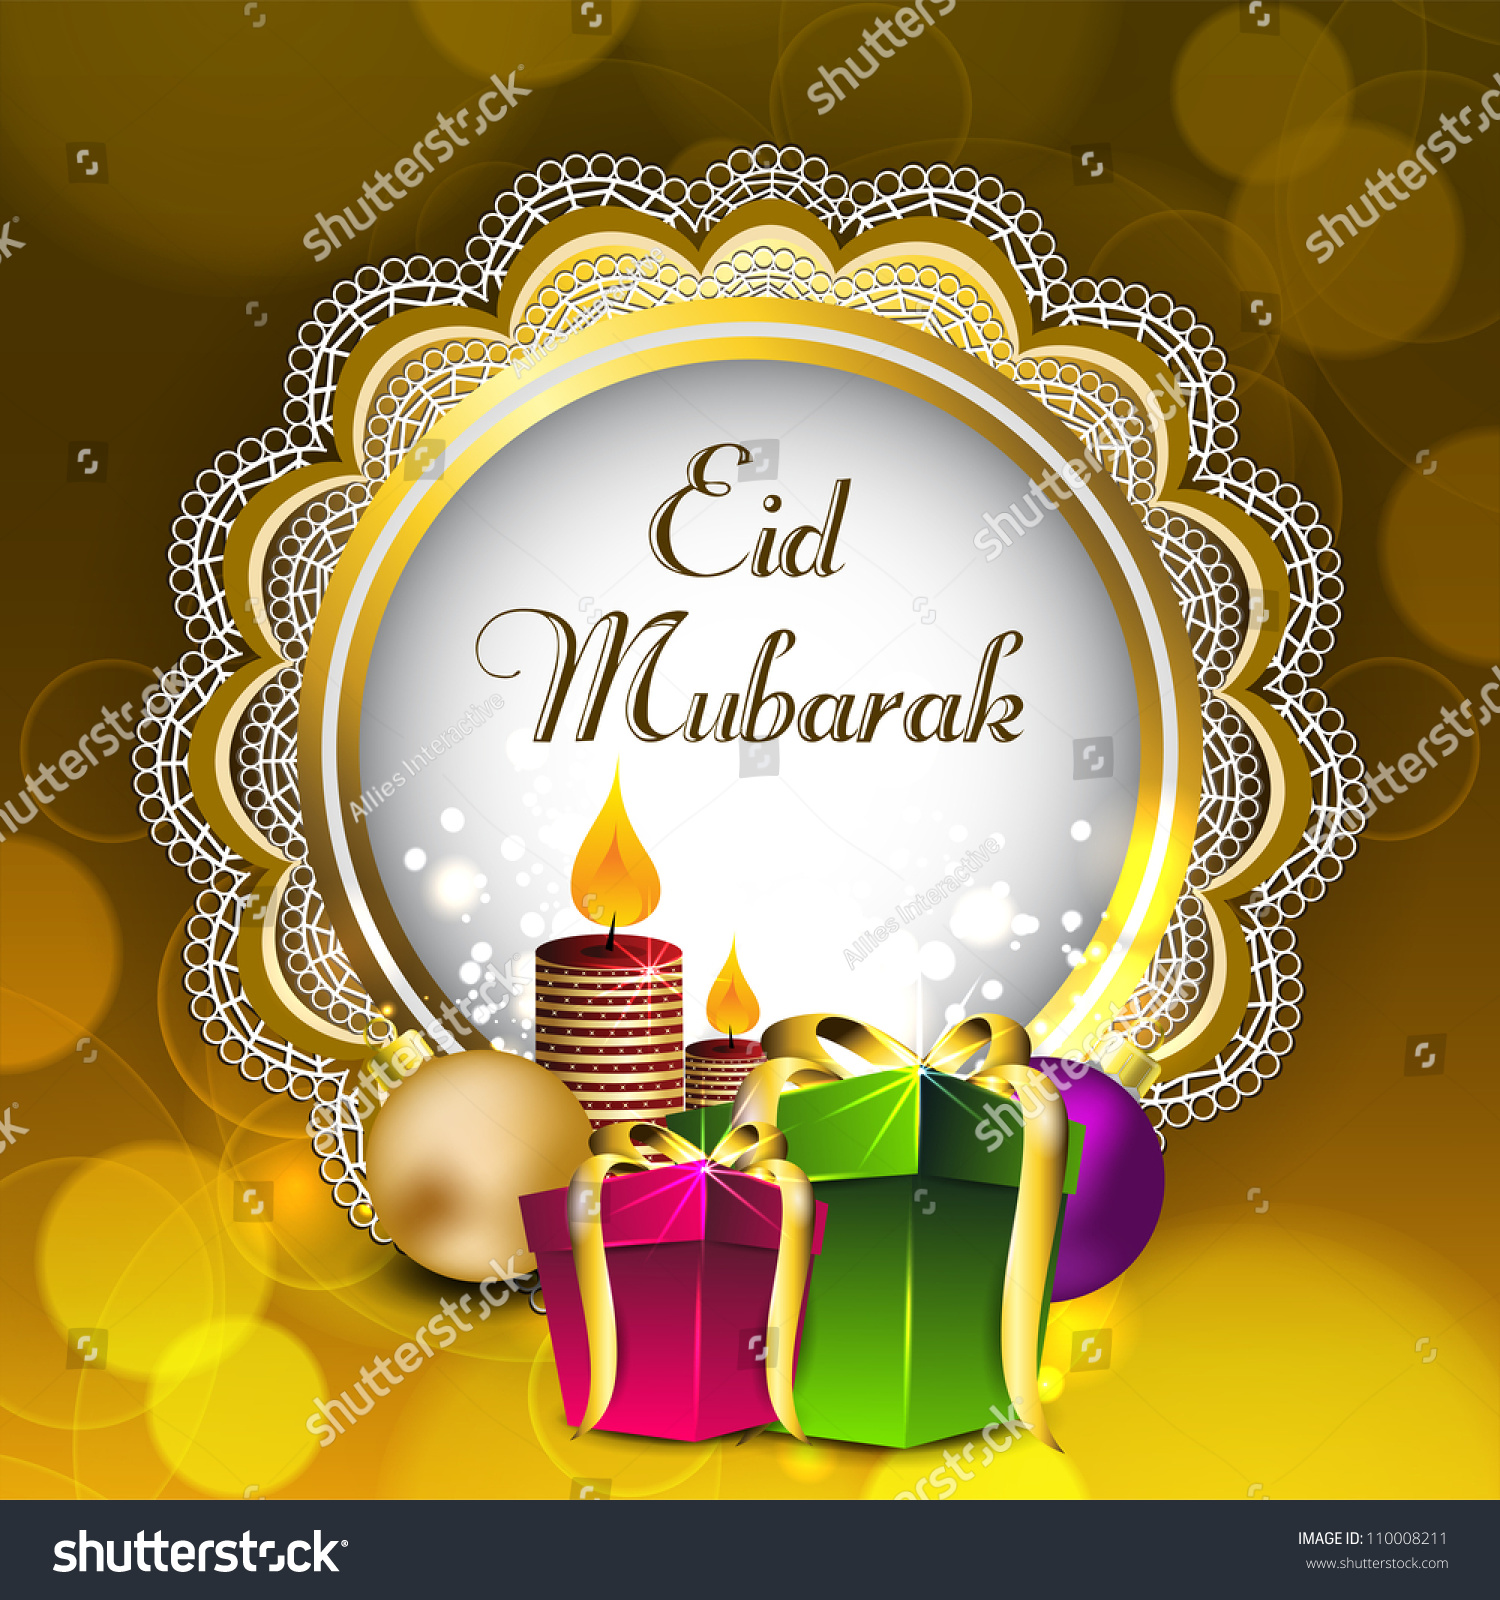 Beautiful greeting card gift boxes candles stock vector 110008211 beautiful greeting card with gift boxes and candles for celebration of muslim community festival eid mubarak kristyandbryce Choice Image